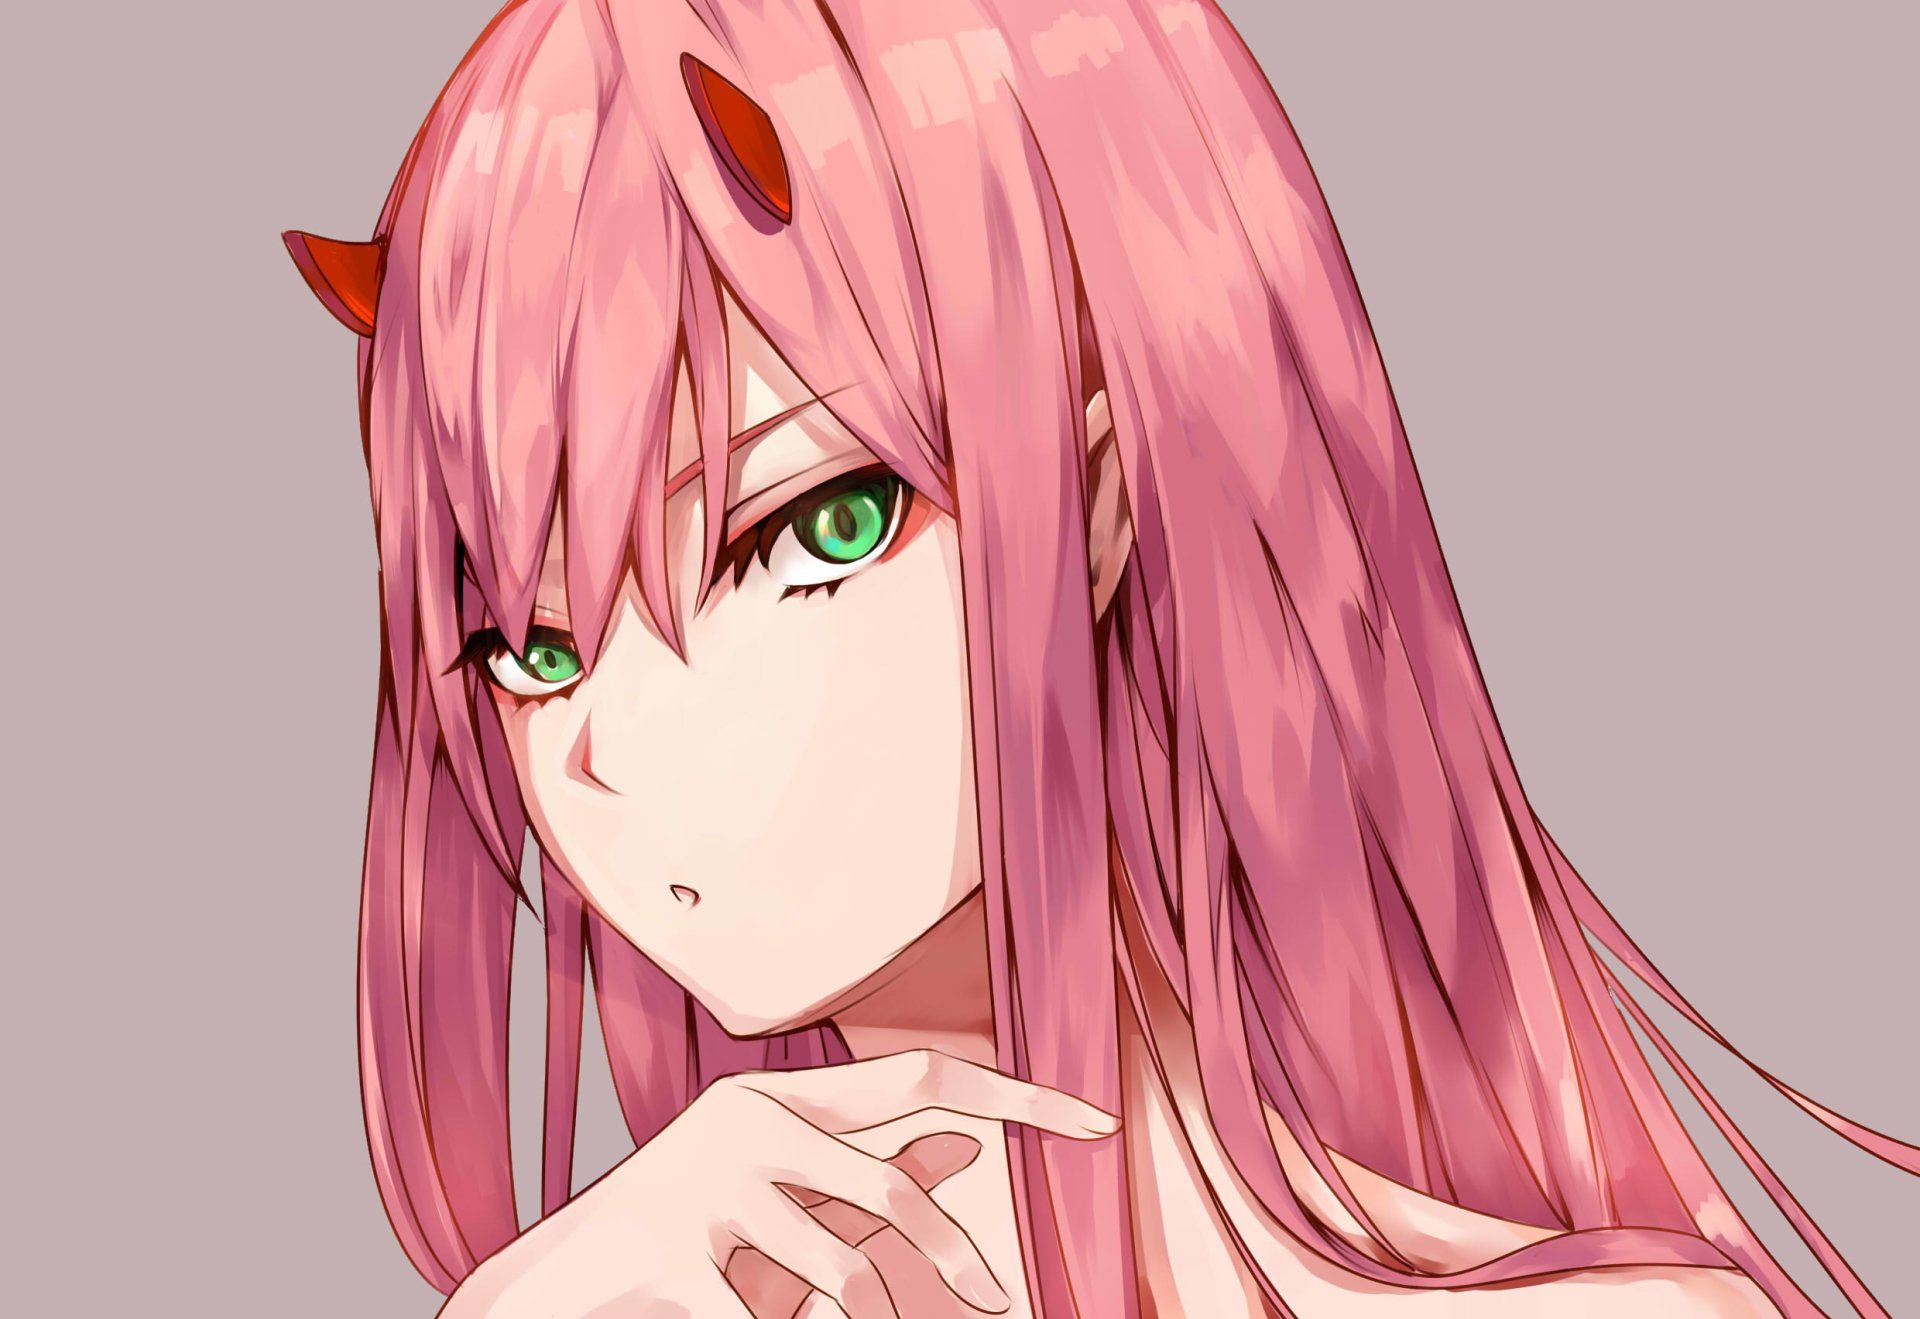 Anime Darling In The Franxx Zero Two Darling In The Franxx Long